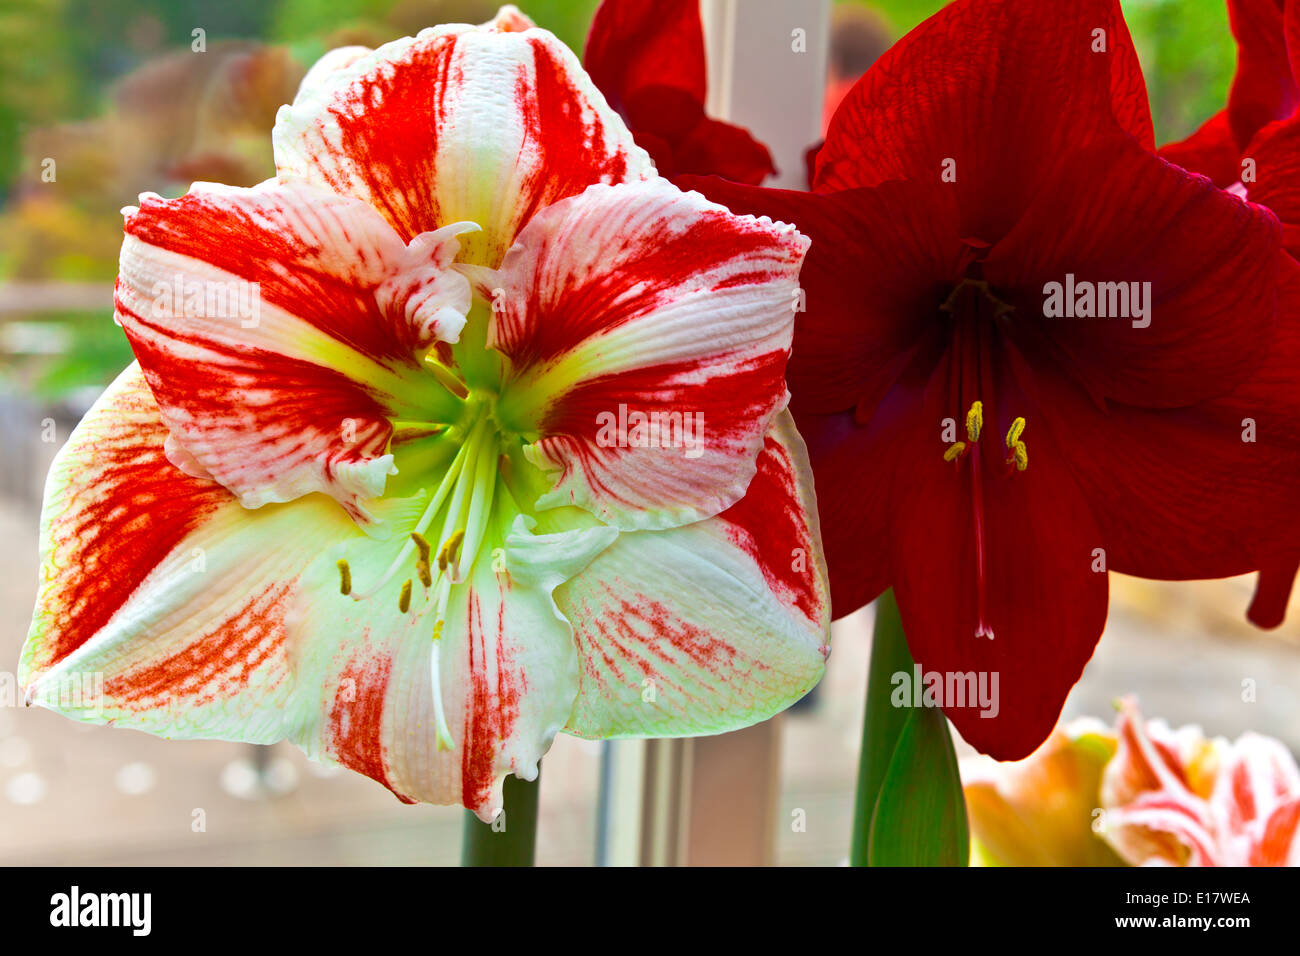 Duo of stripy pink and a red amaryllis close-up. Stock Photo